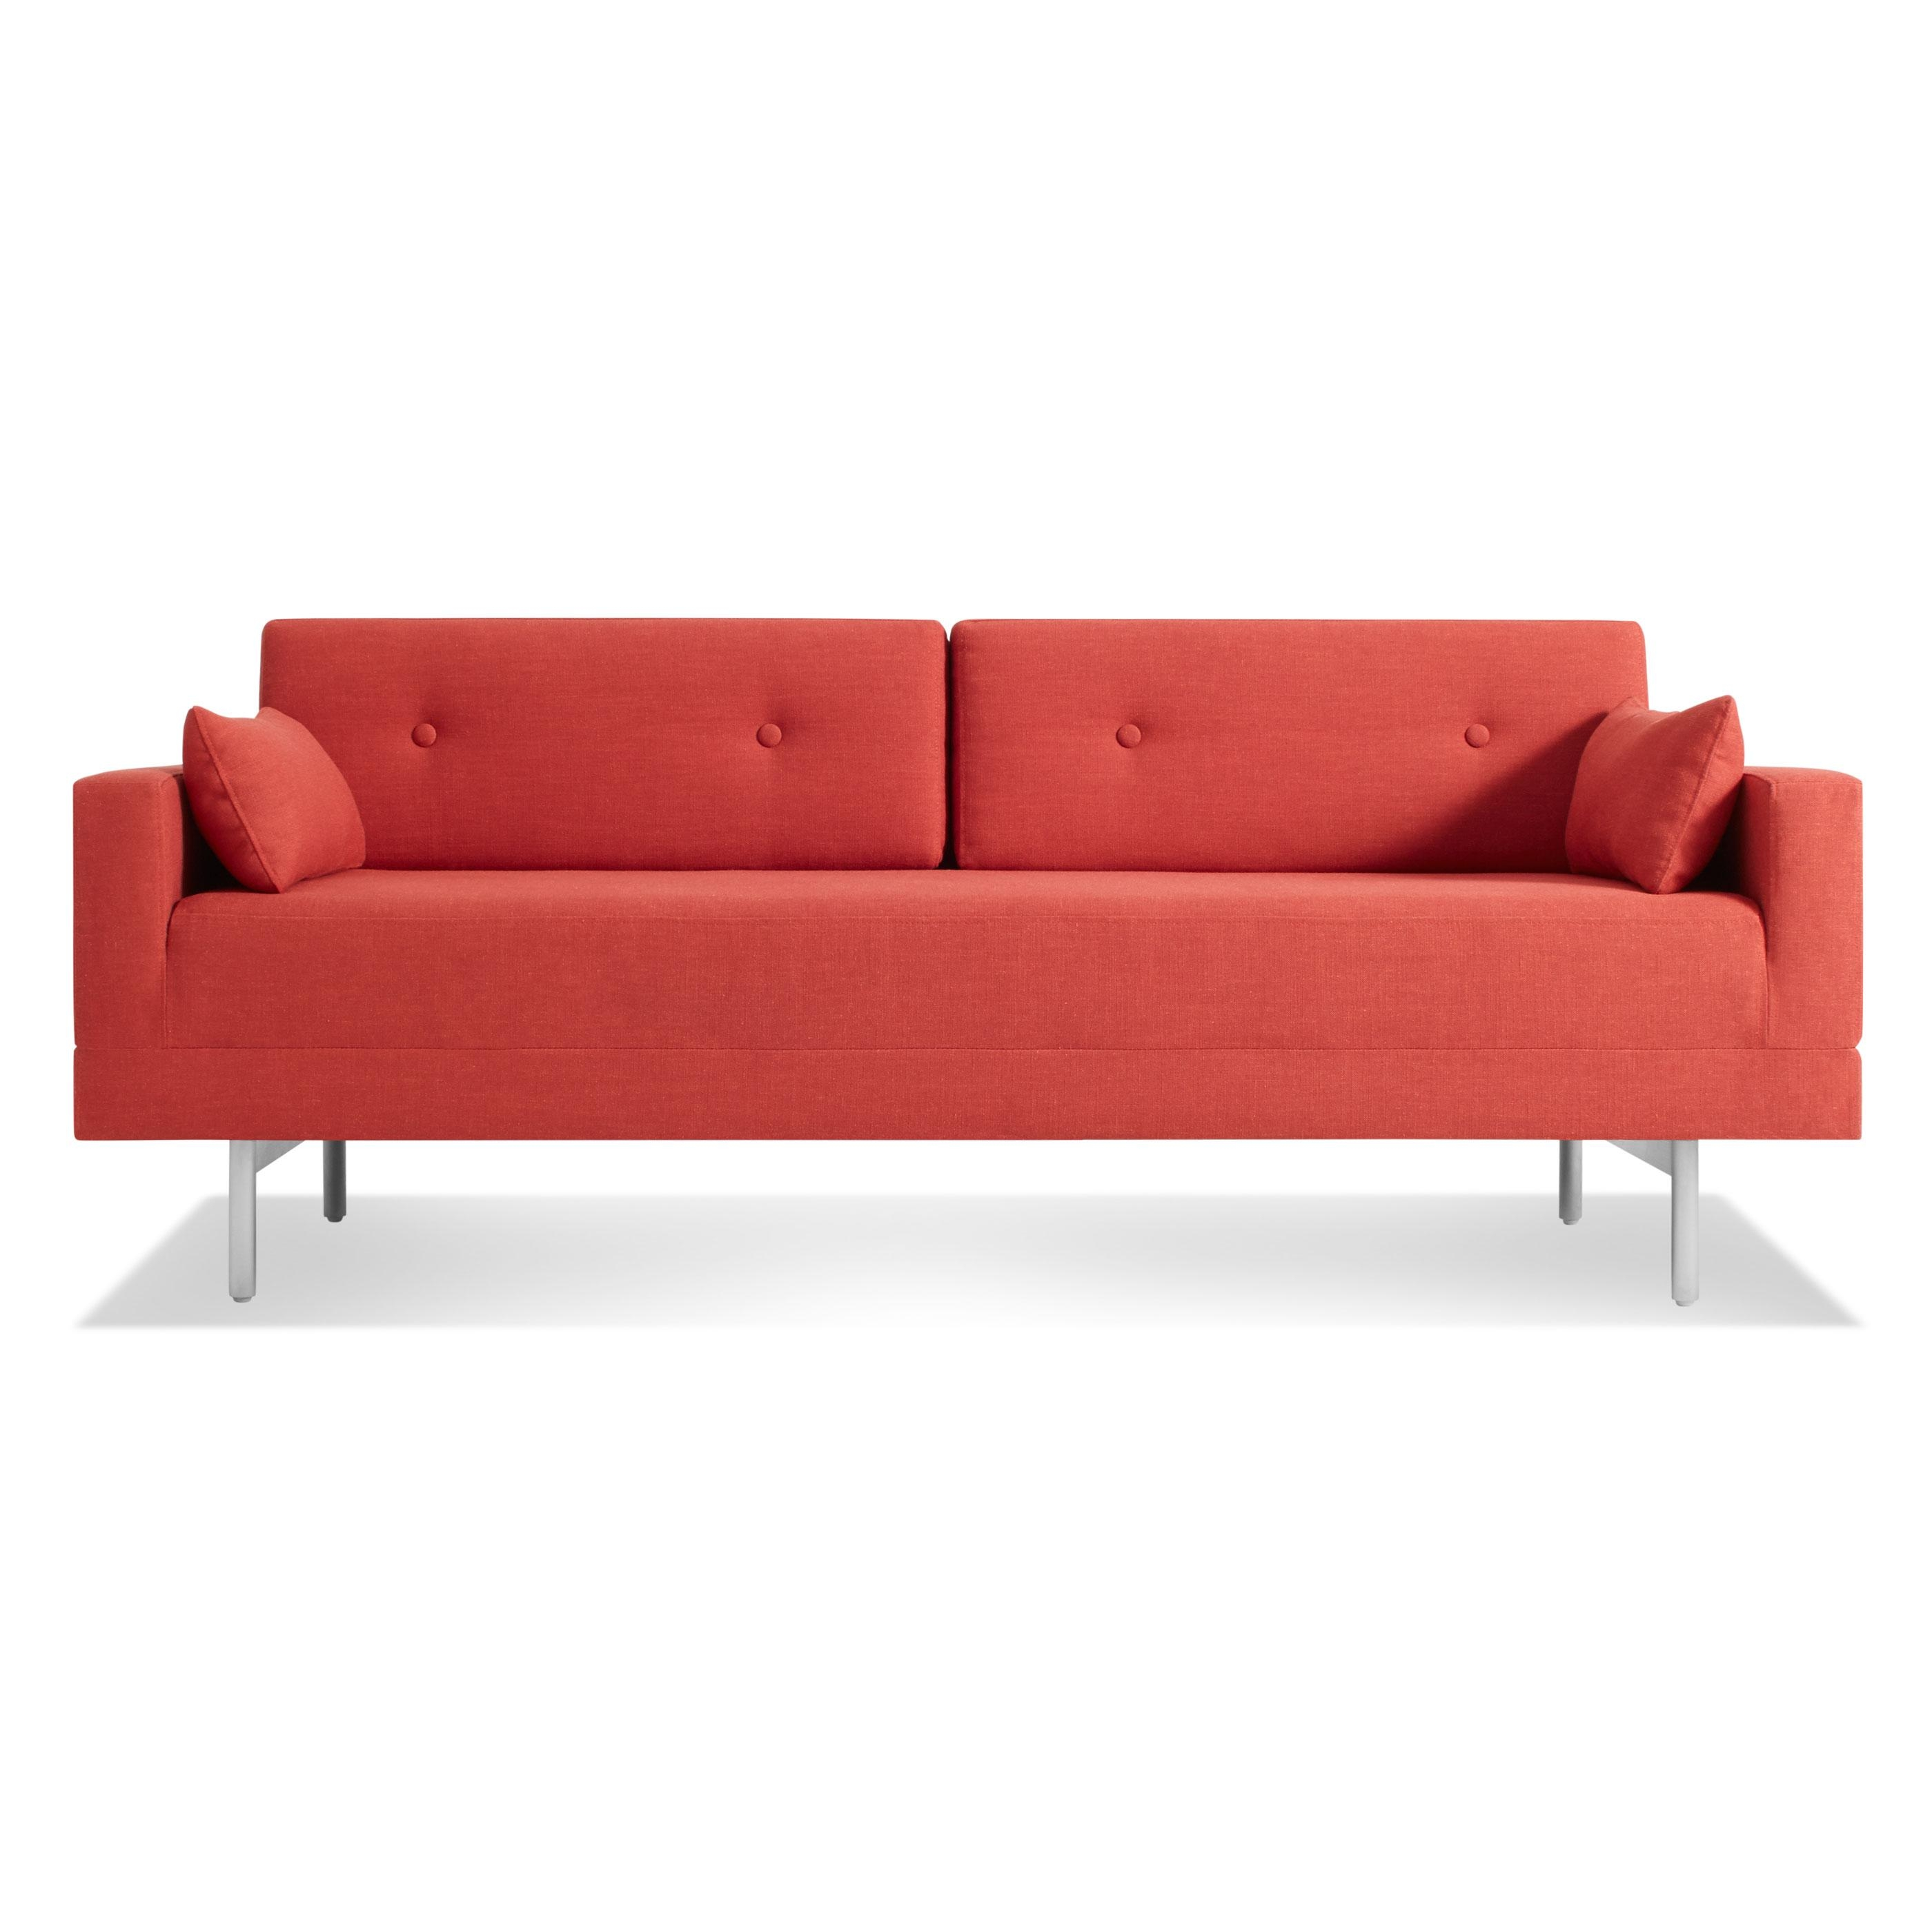 One Night Stand Modern Queen Sleeper Sofa | Blu Dot With Regard To Red Sleeper Sofa (View 3 of 20)